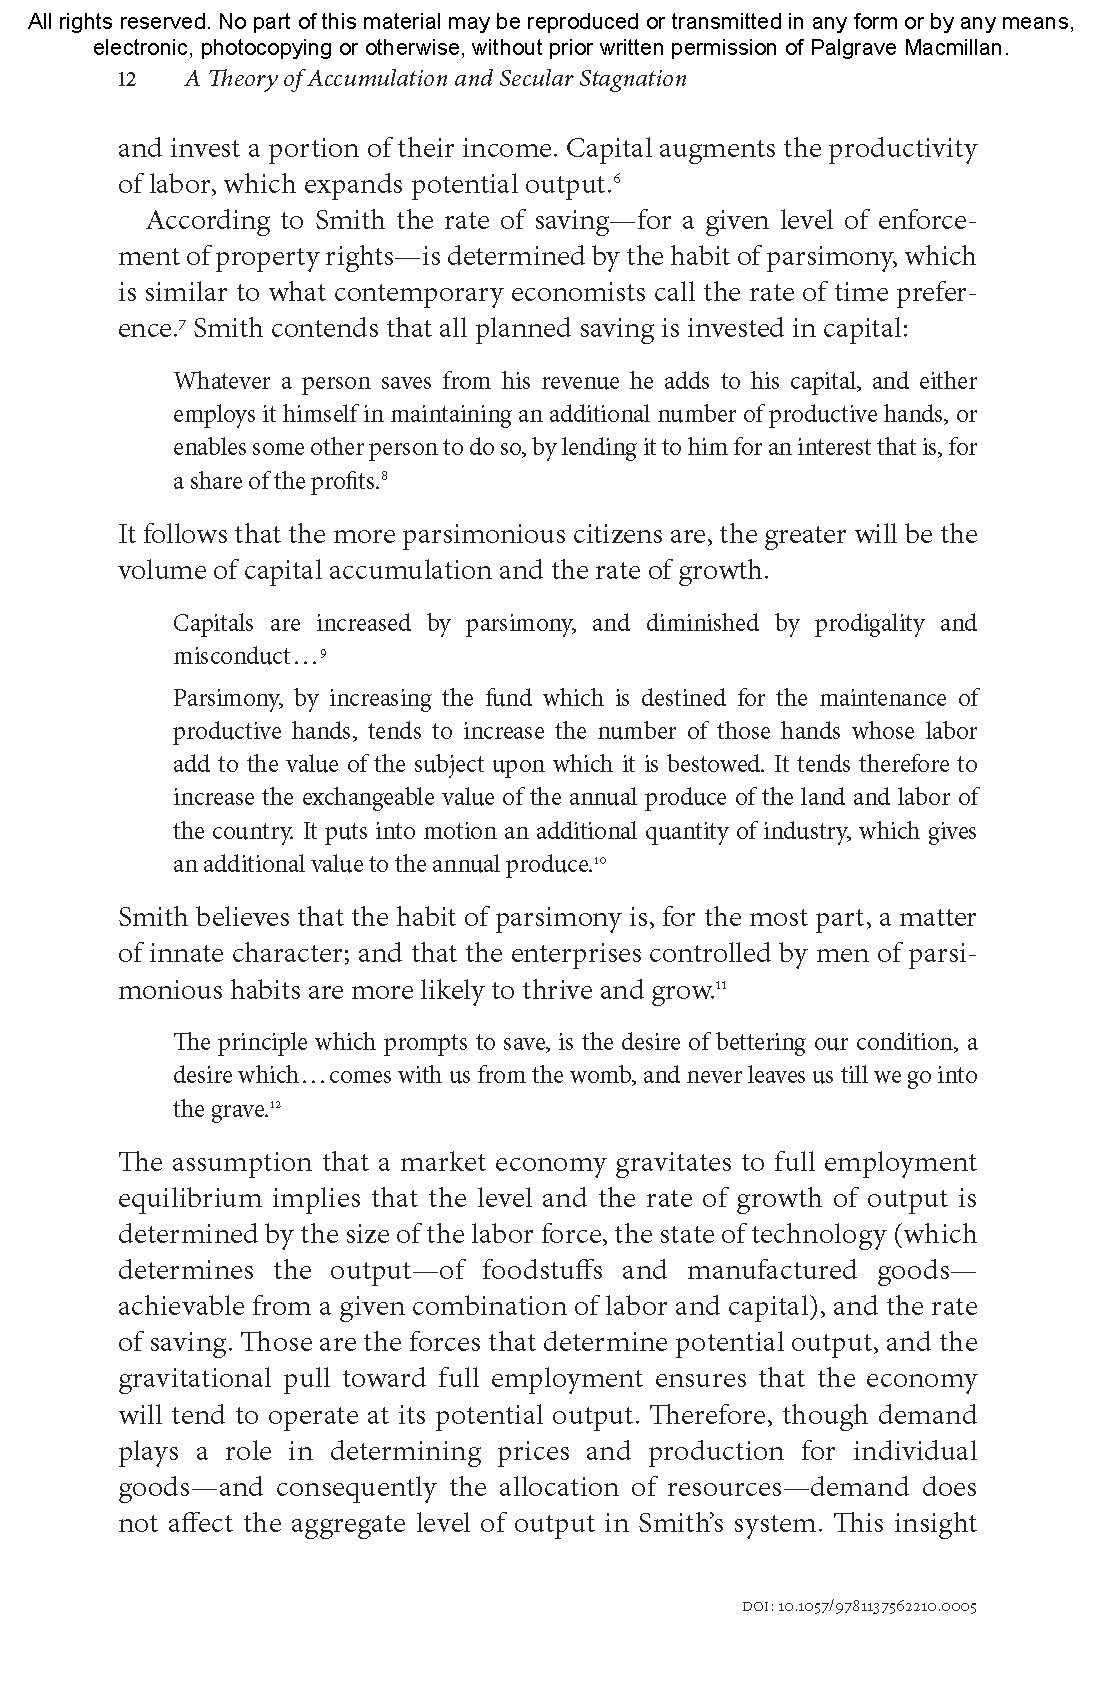 Pages from Accumulation and Secular Stagnation - pdf published book-2_Page_18.jpg